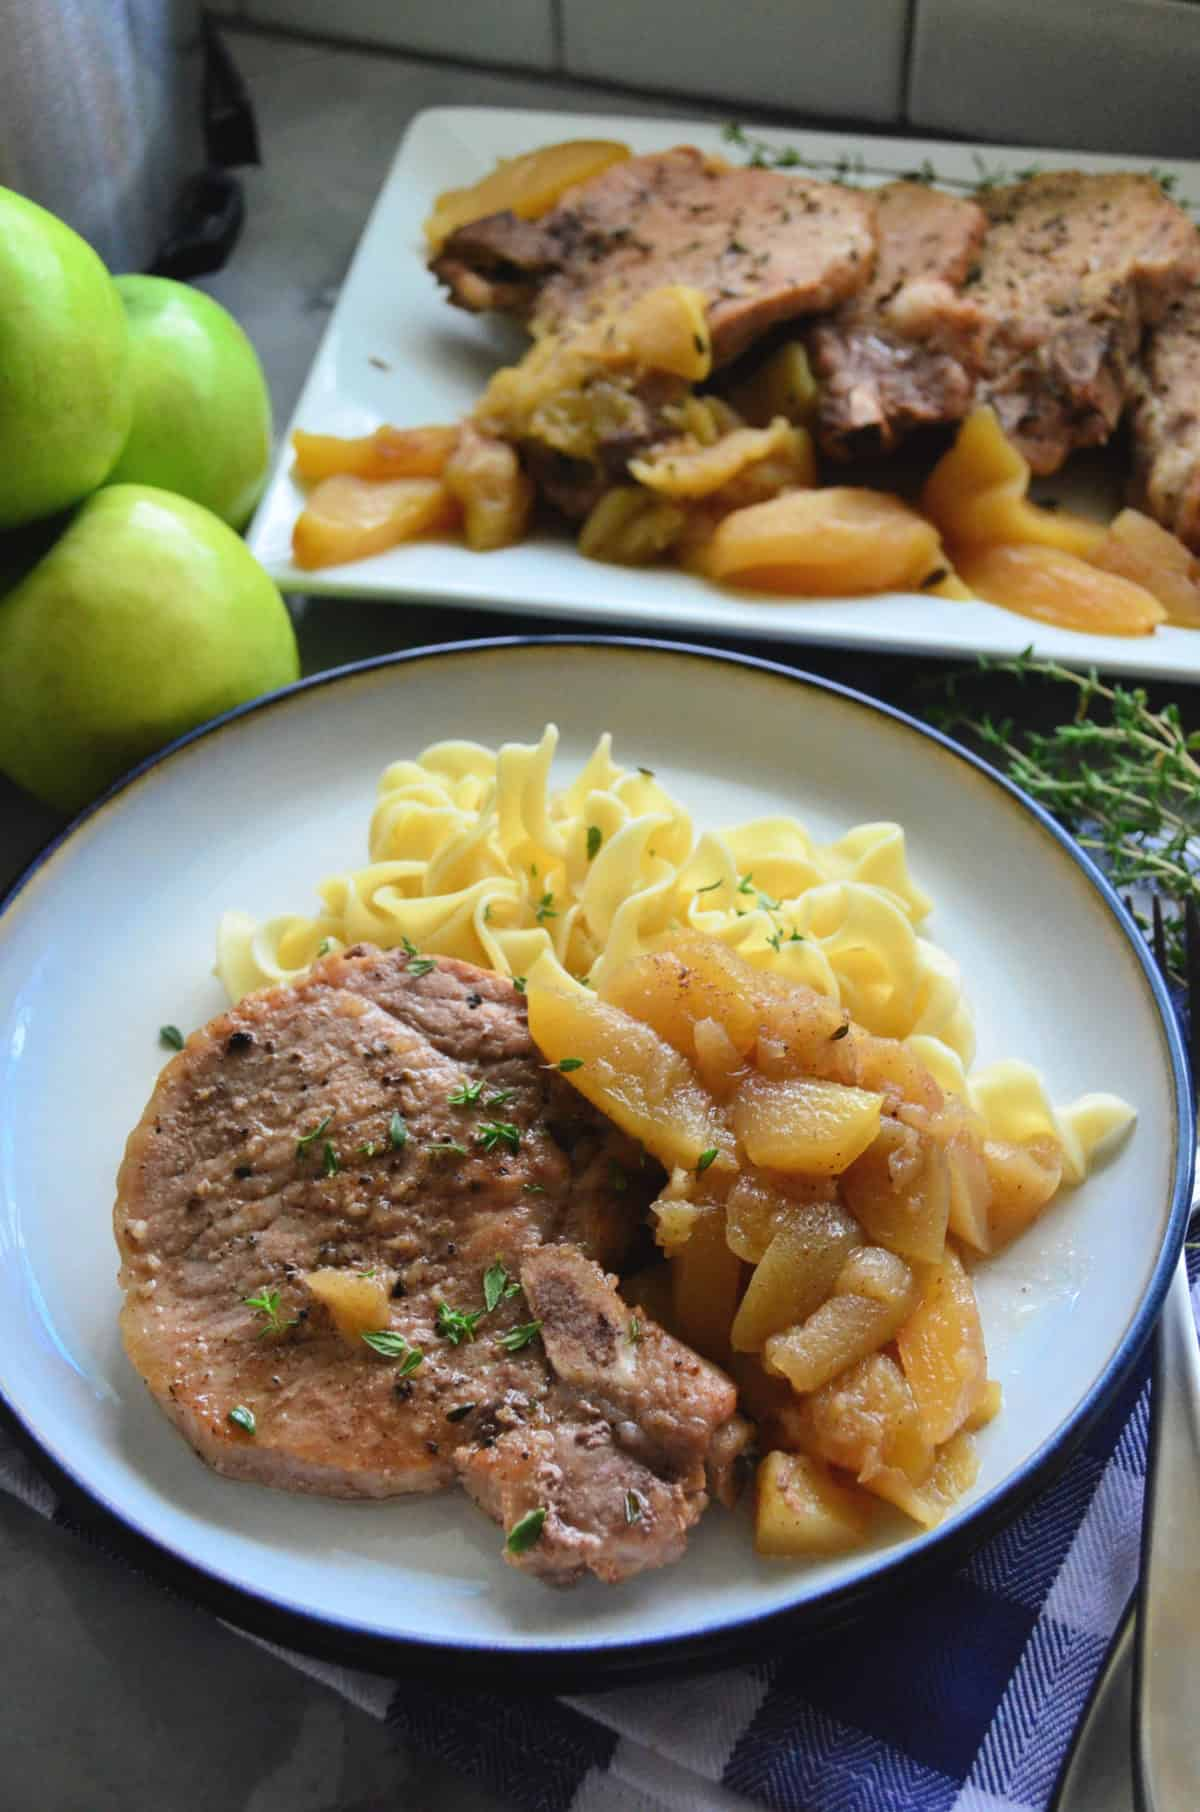 Plated sliced pork chops with cooked apples, egg noodles, and platter of pork chops in background.